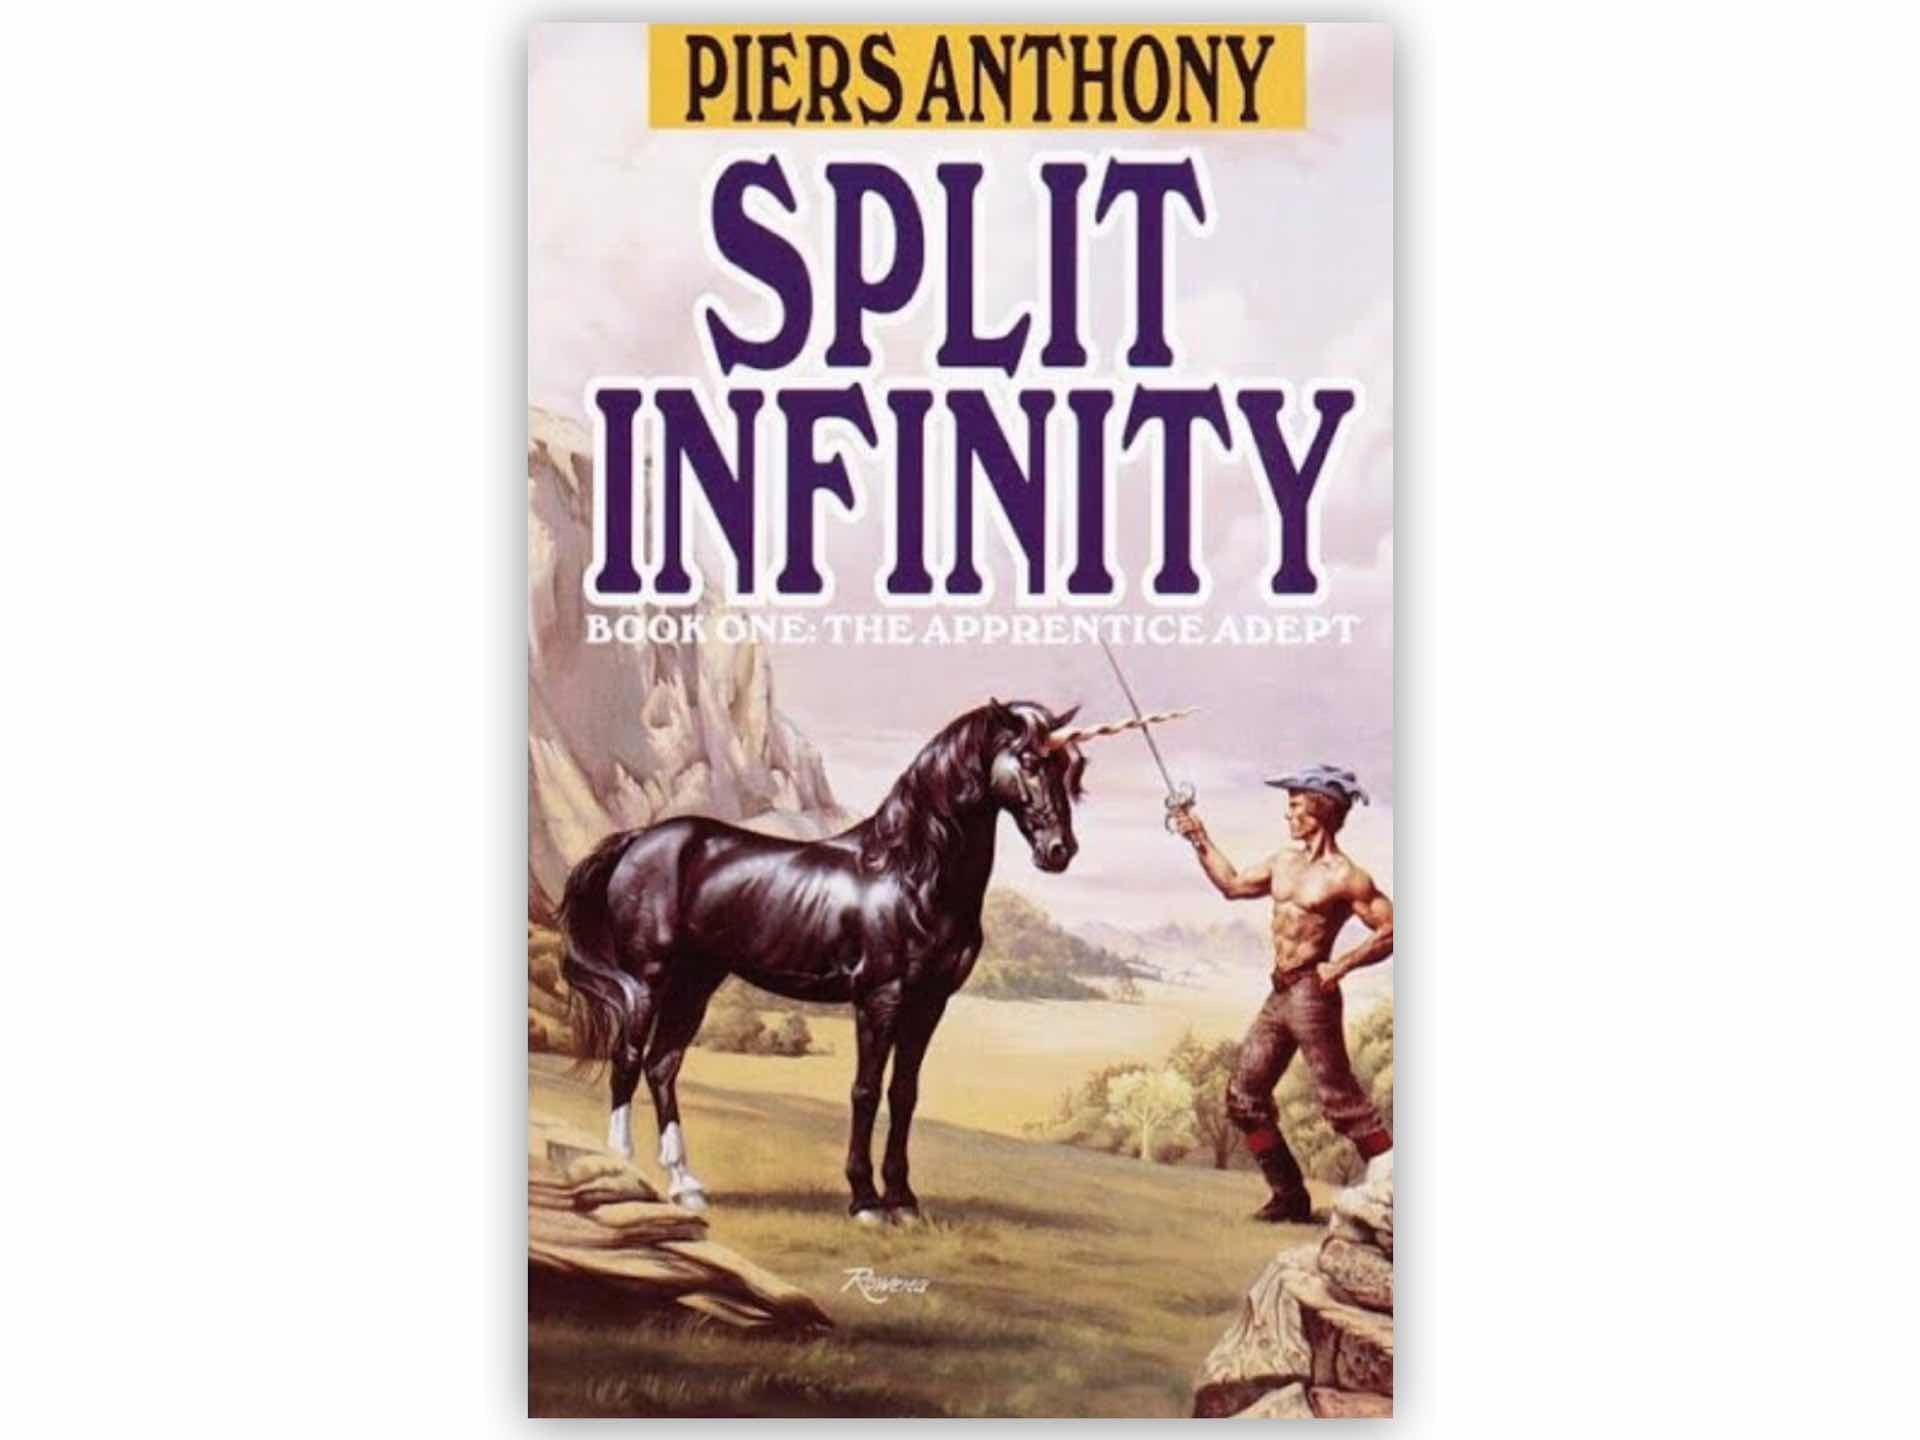 The Apprentice Adept series by Piers Anthony.